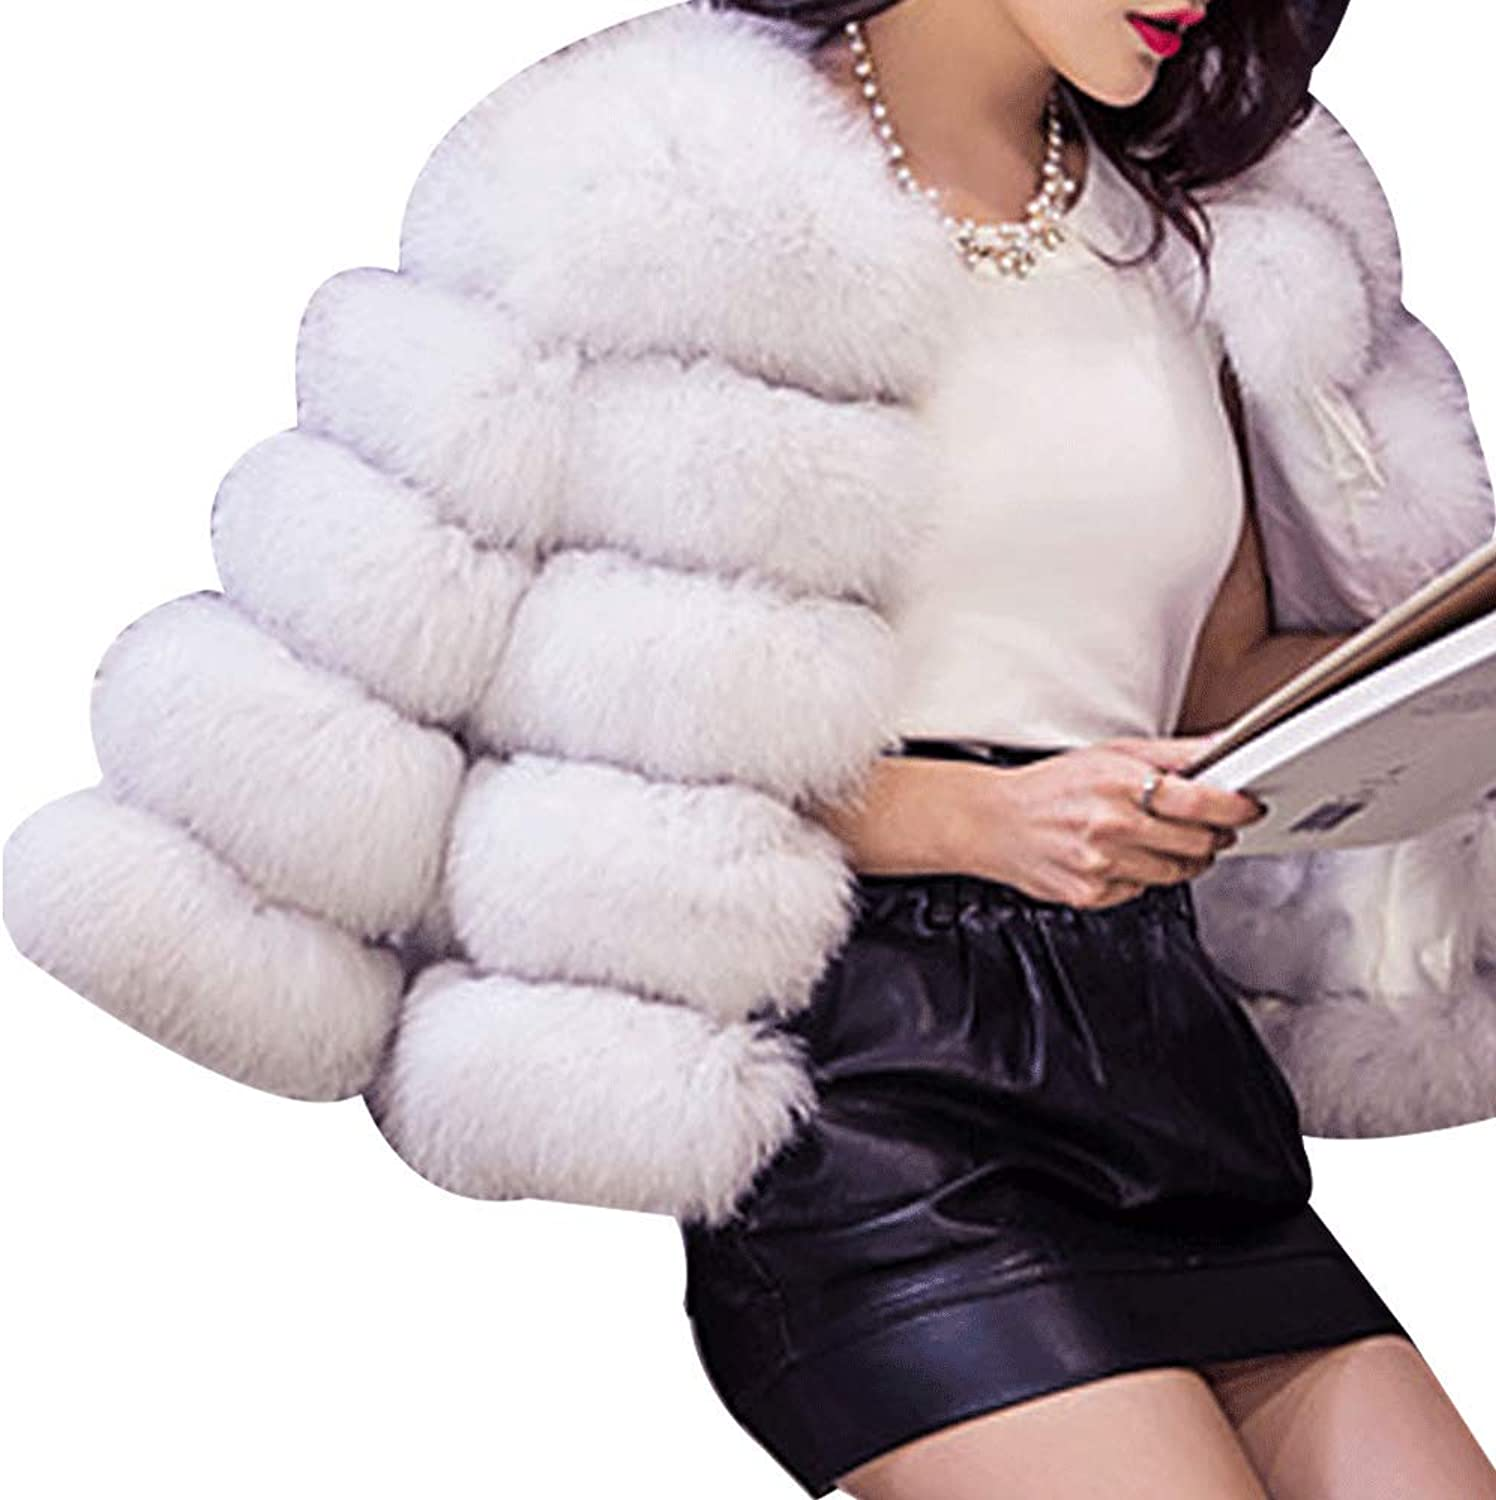 HIENAJ Women's Thick Winter Outerwear Coat Fashion Soft Short Fox Faux Fur Warm Jacket